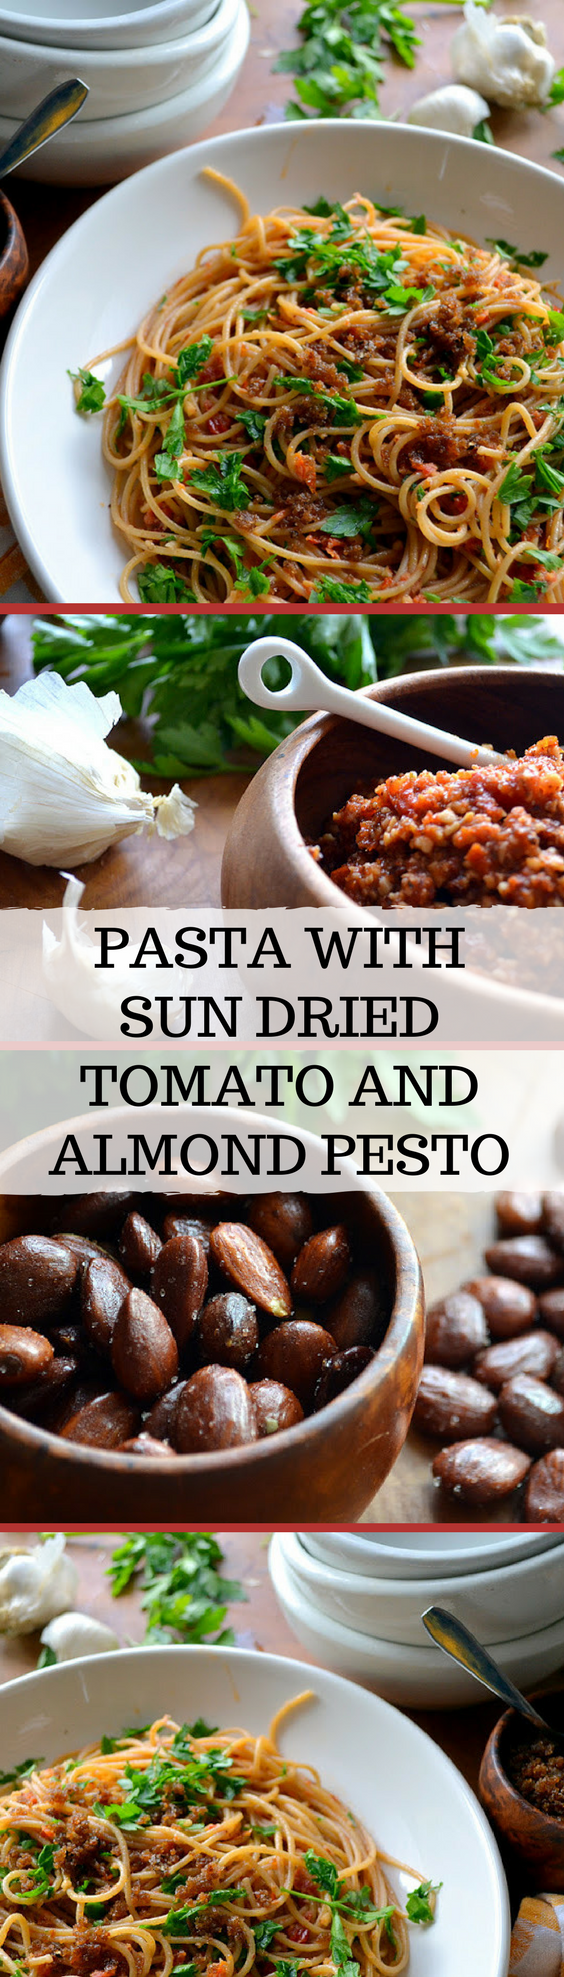 I have a soft spot in my heart for 30 minute meals like this Pasta with Sun Dried Tomato and Almond Pesto that come together without a trip to the store. #pasta #dinner #easydinner #Mediterranean #Italian #30minutemeal #healthypasta #recipe #pesto